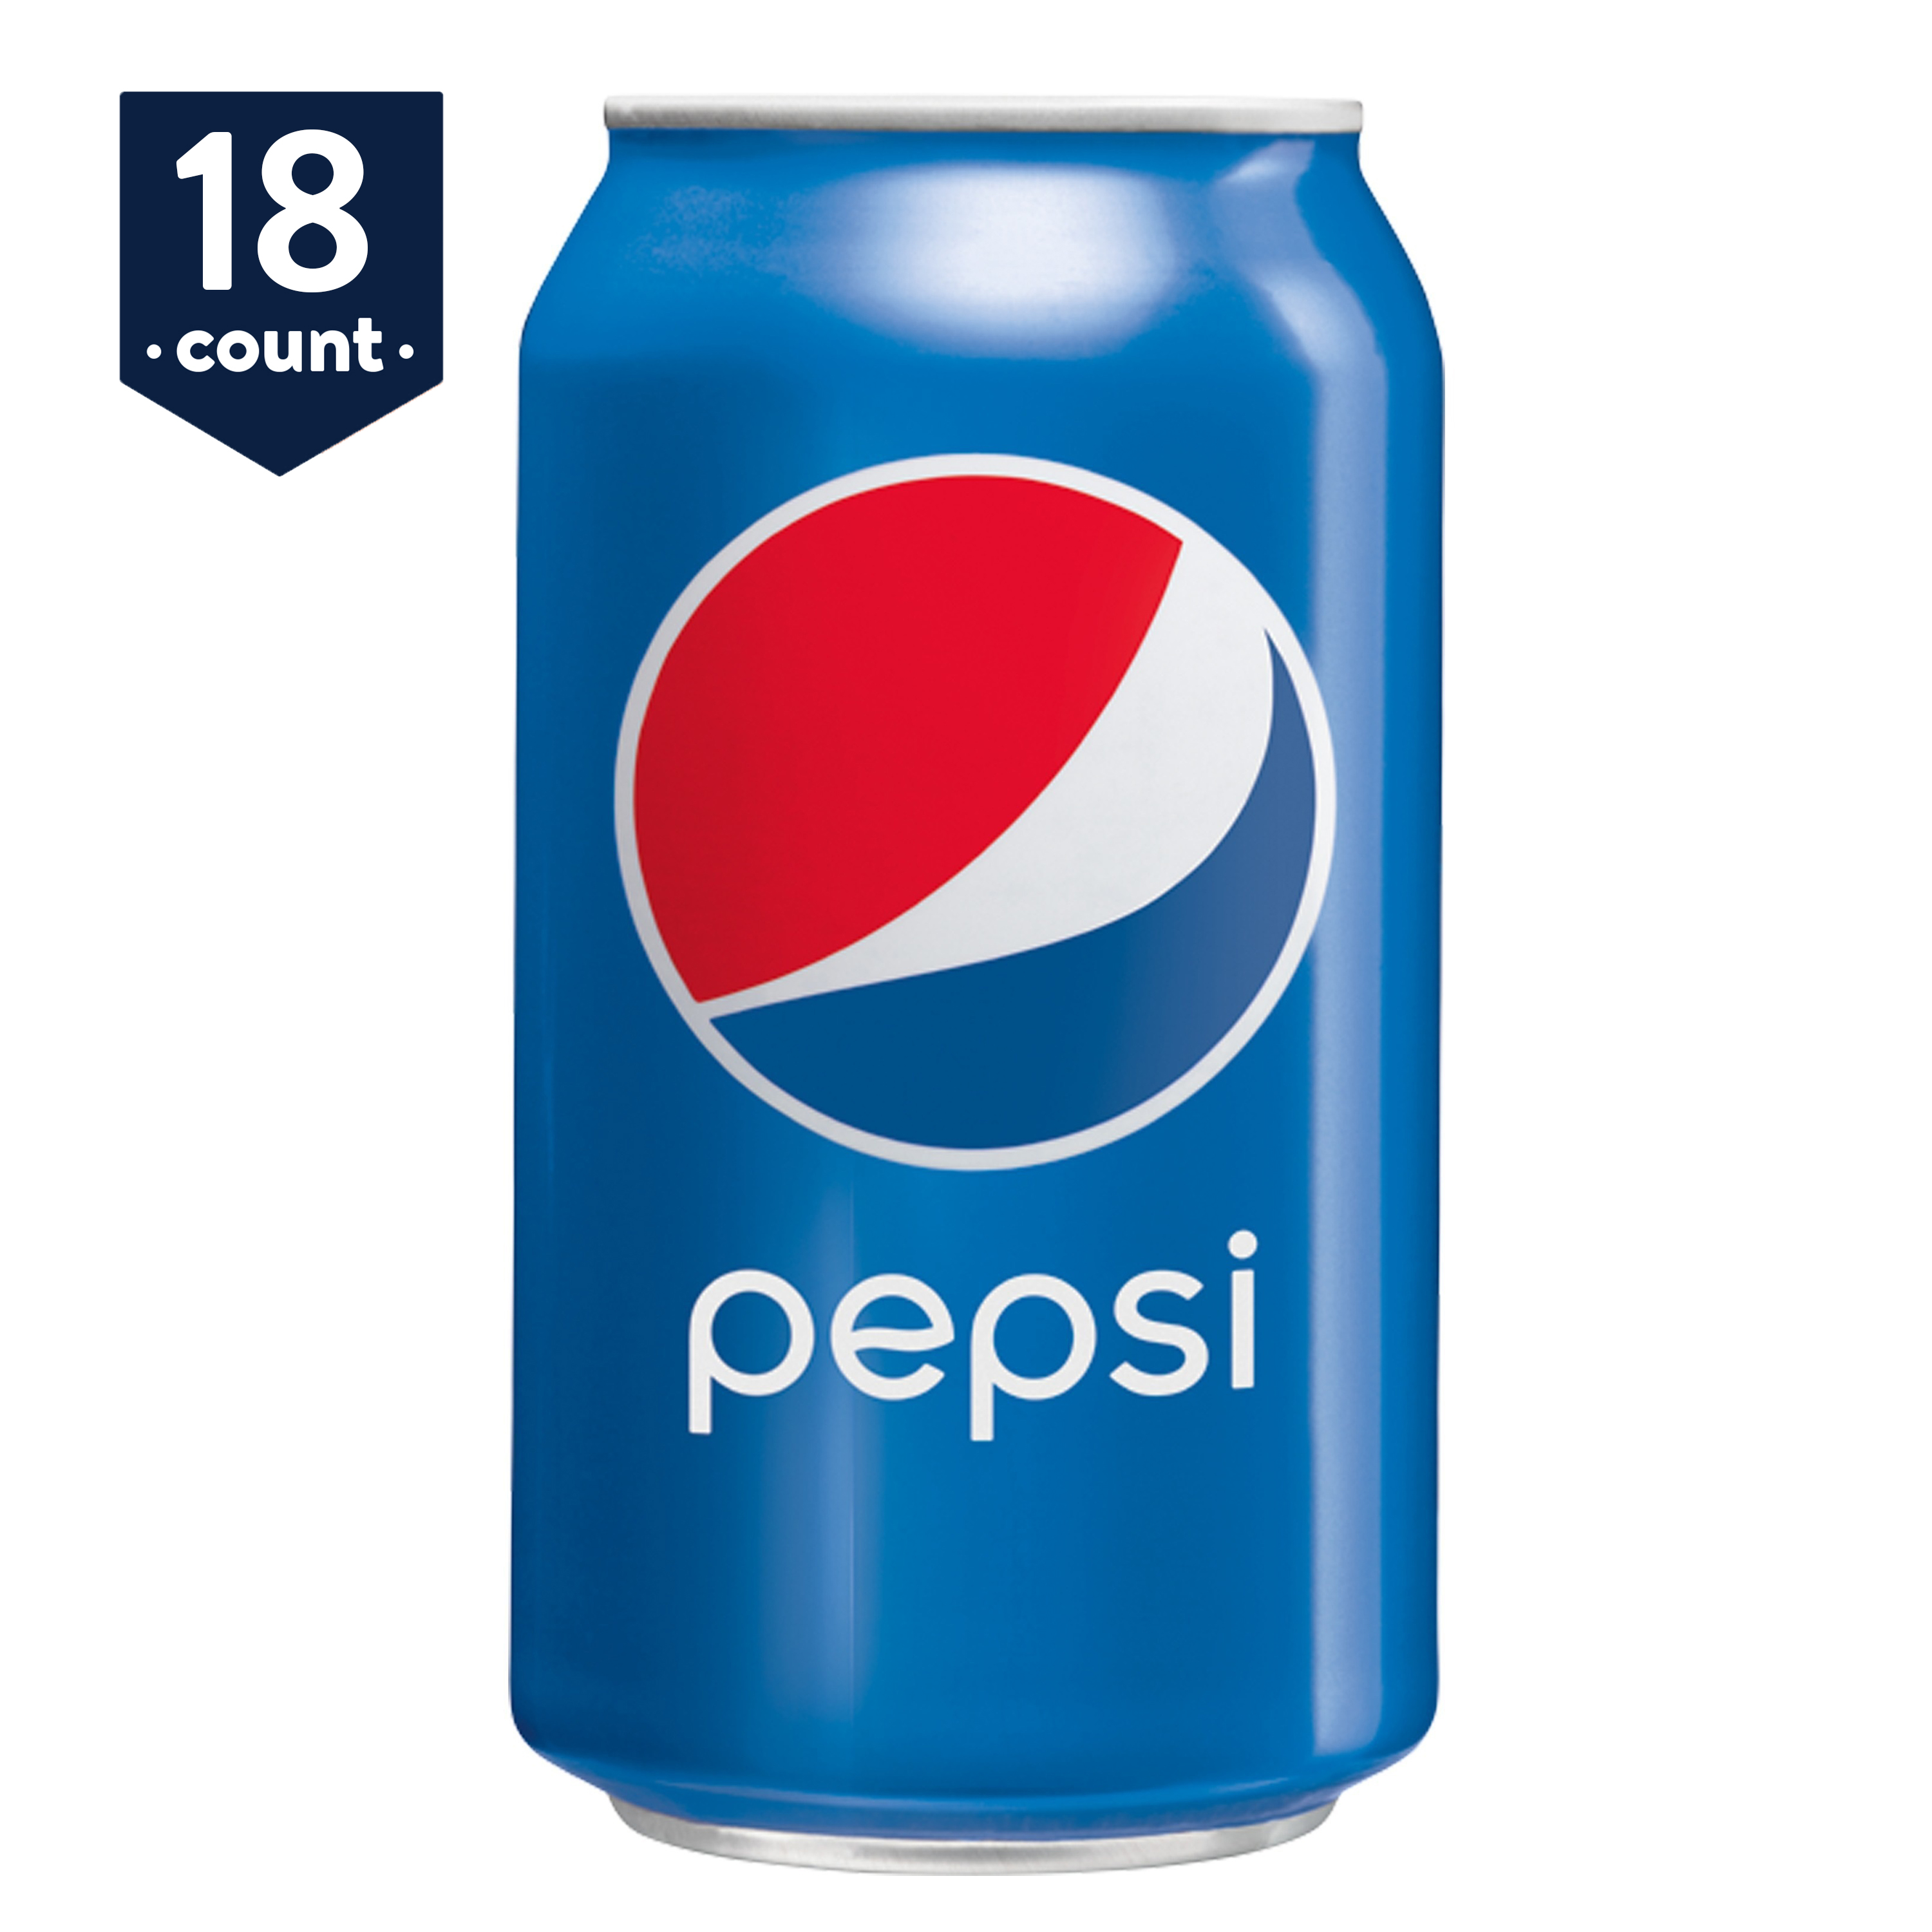 Pepsi, 12 oz Cans, 18 Count